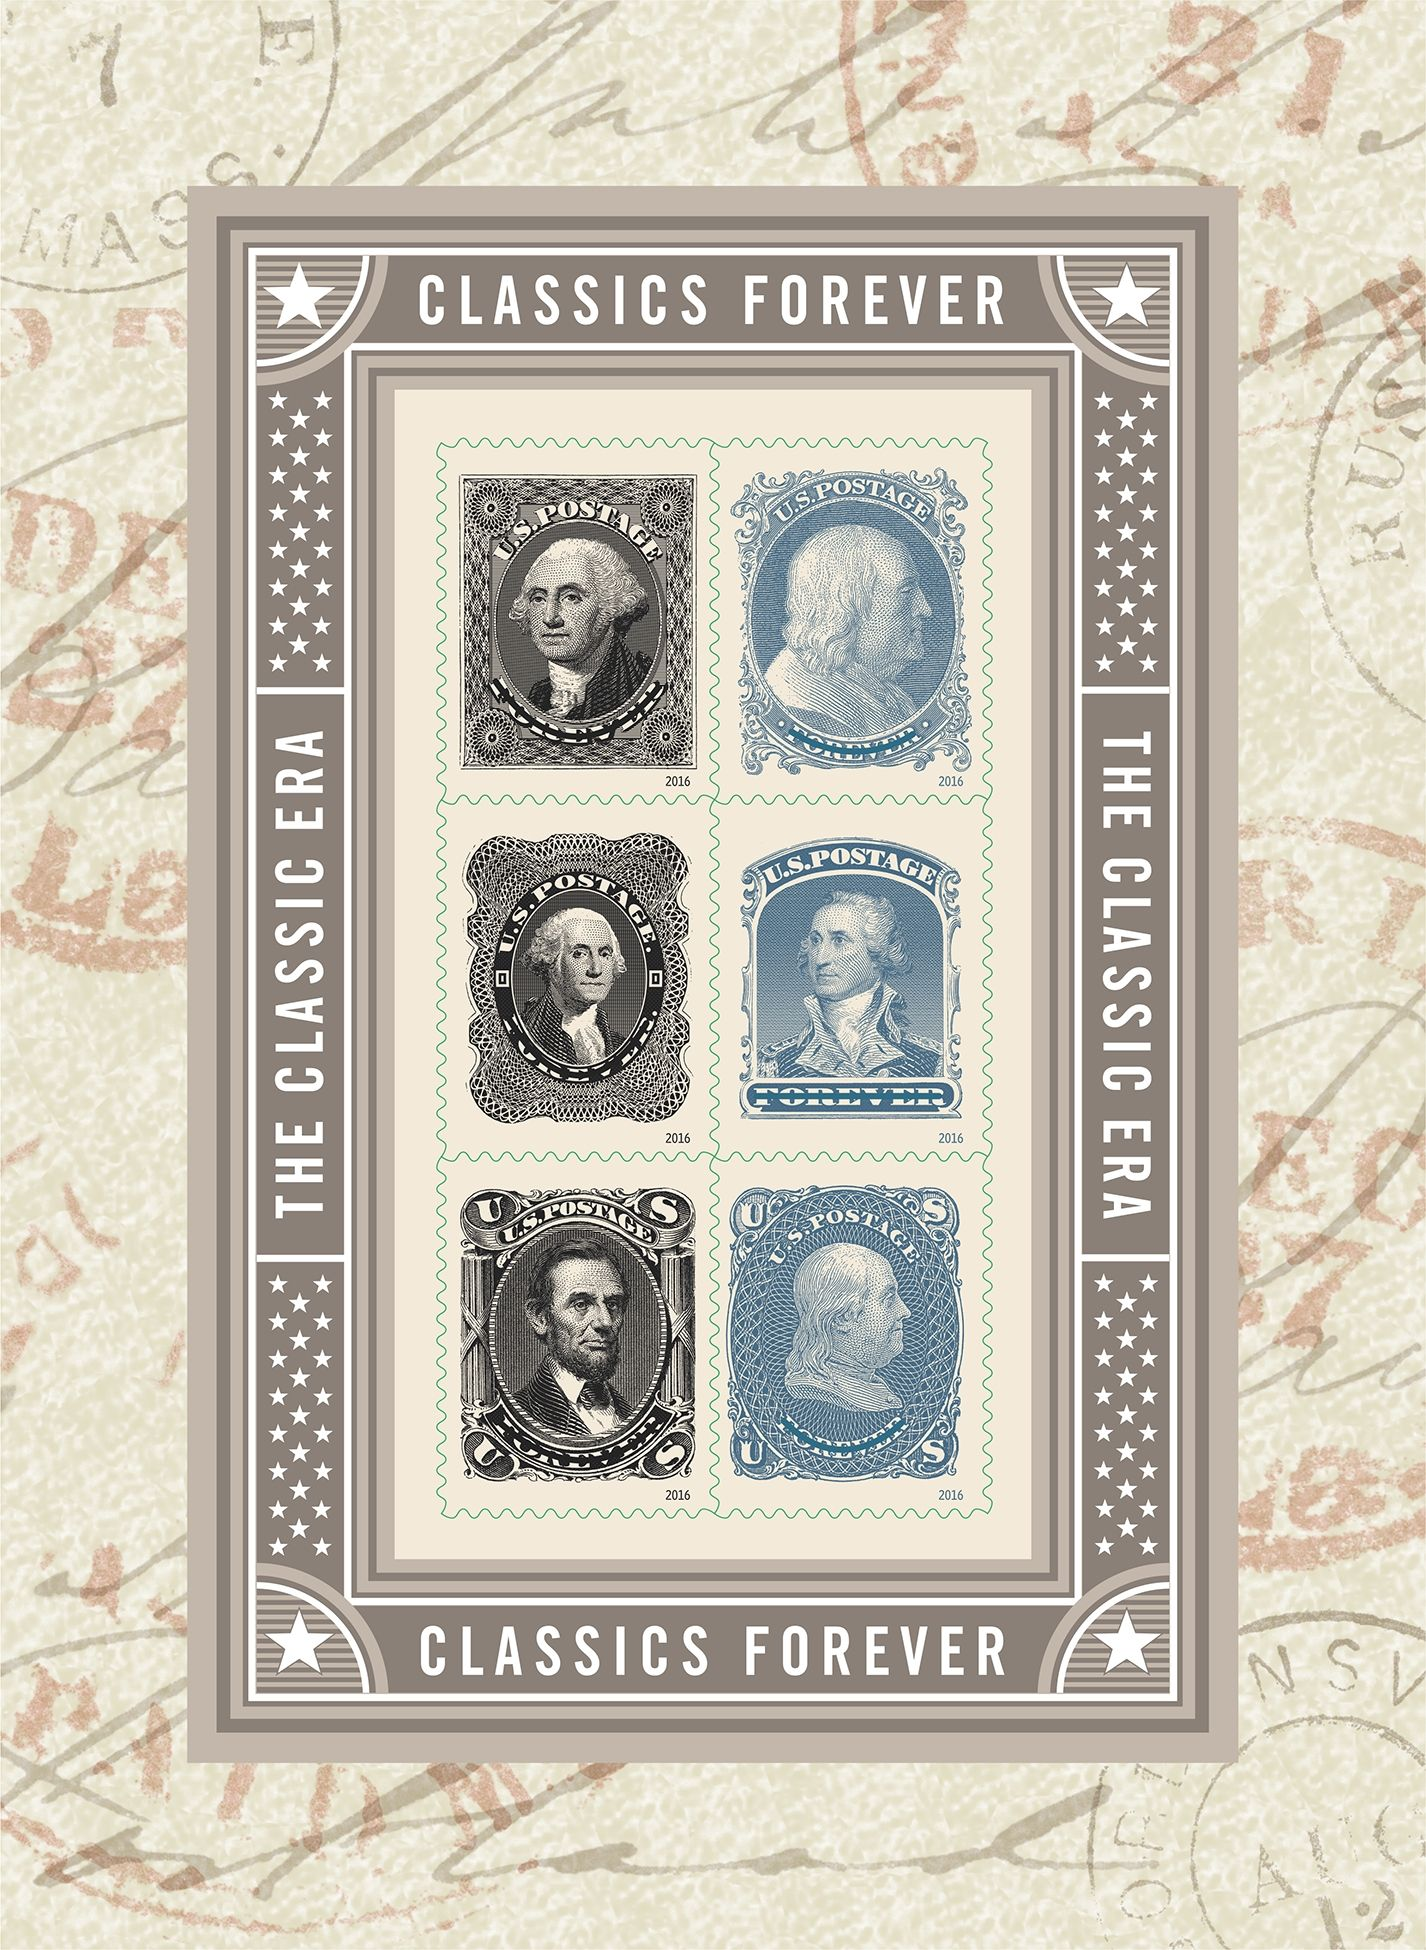 Where to buy stamps - Classics Forever Stamp Series Honoring Former U S Presidents Statesmen